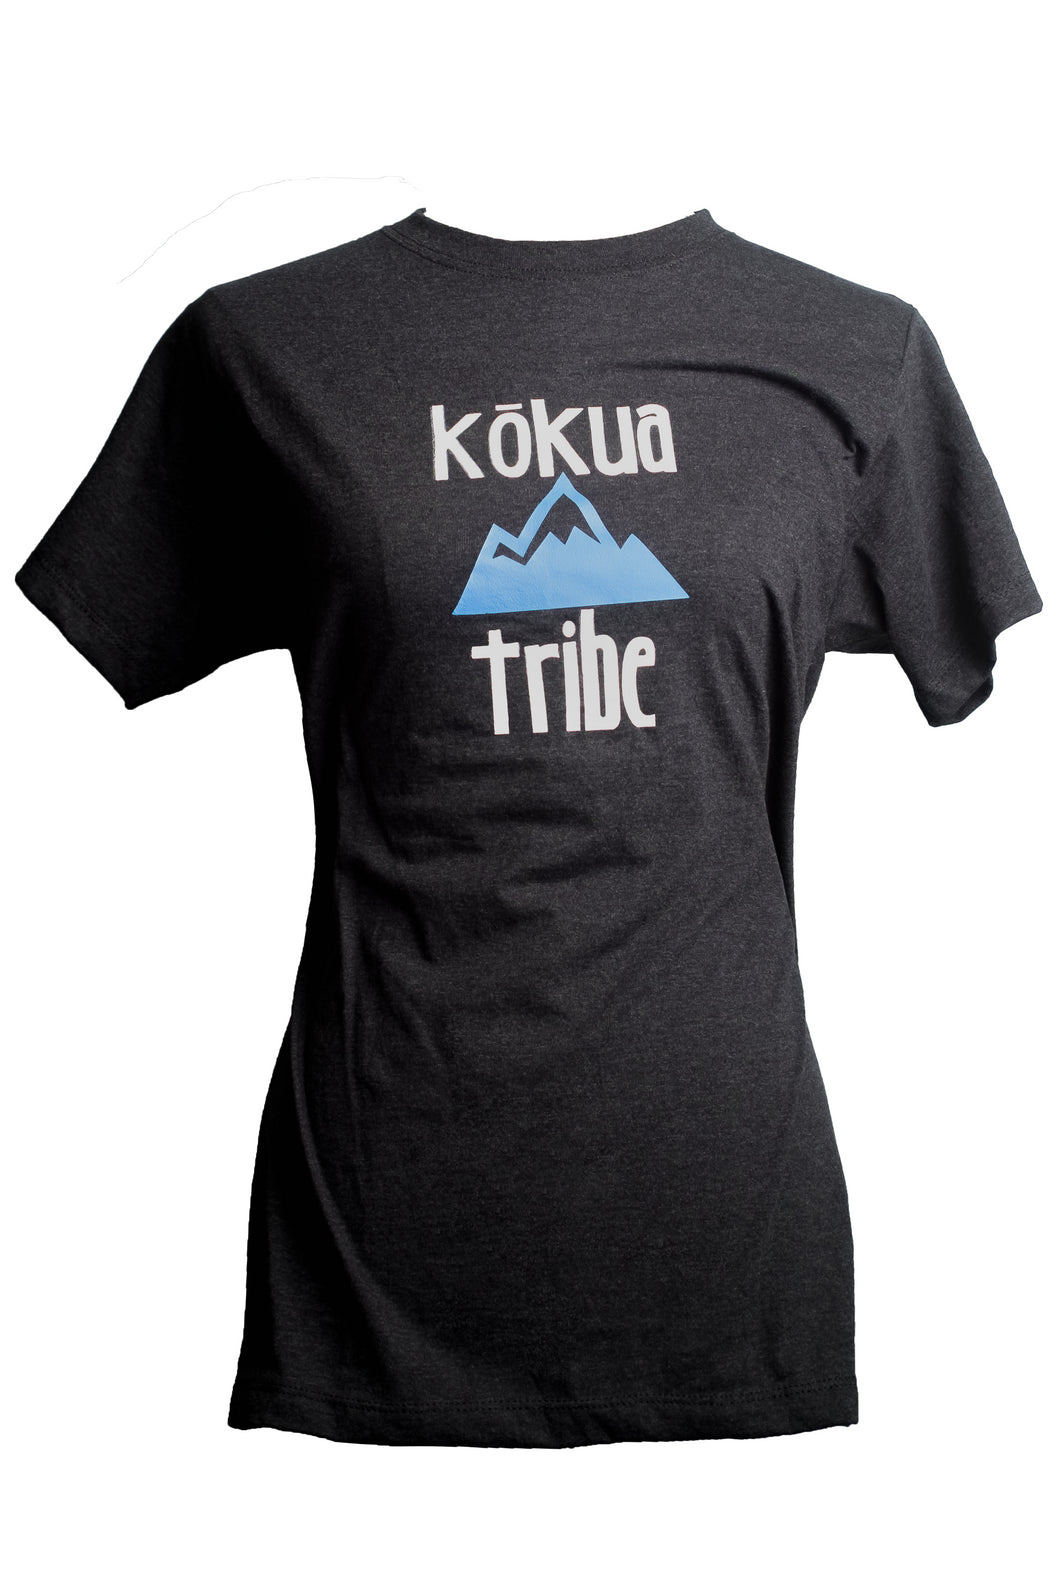 Kōkua Tribe T Shirt - 100% Recycled Material (Made in Haiti)